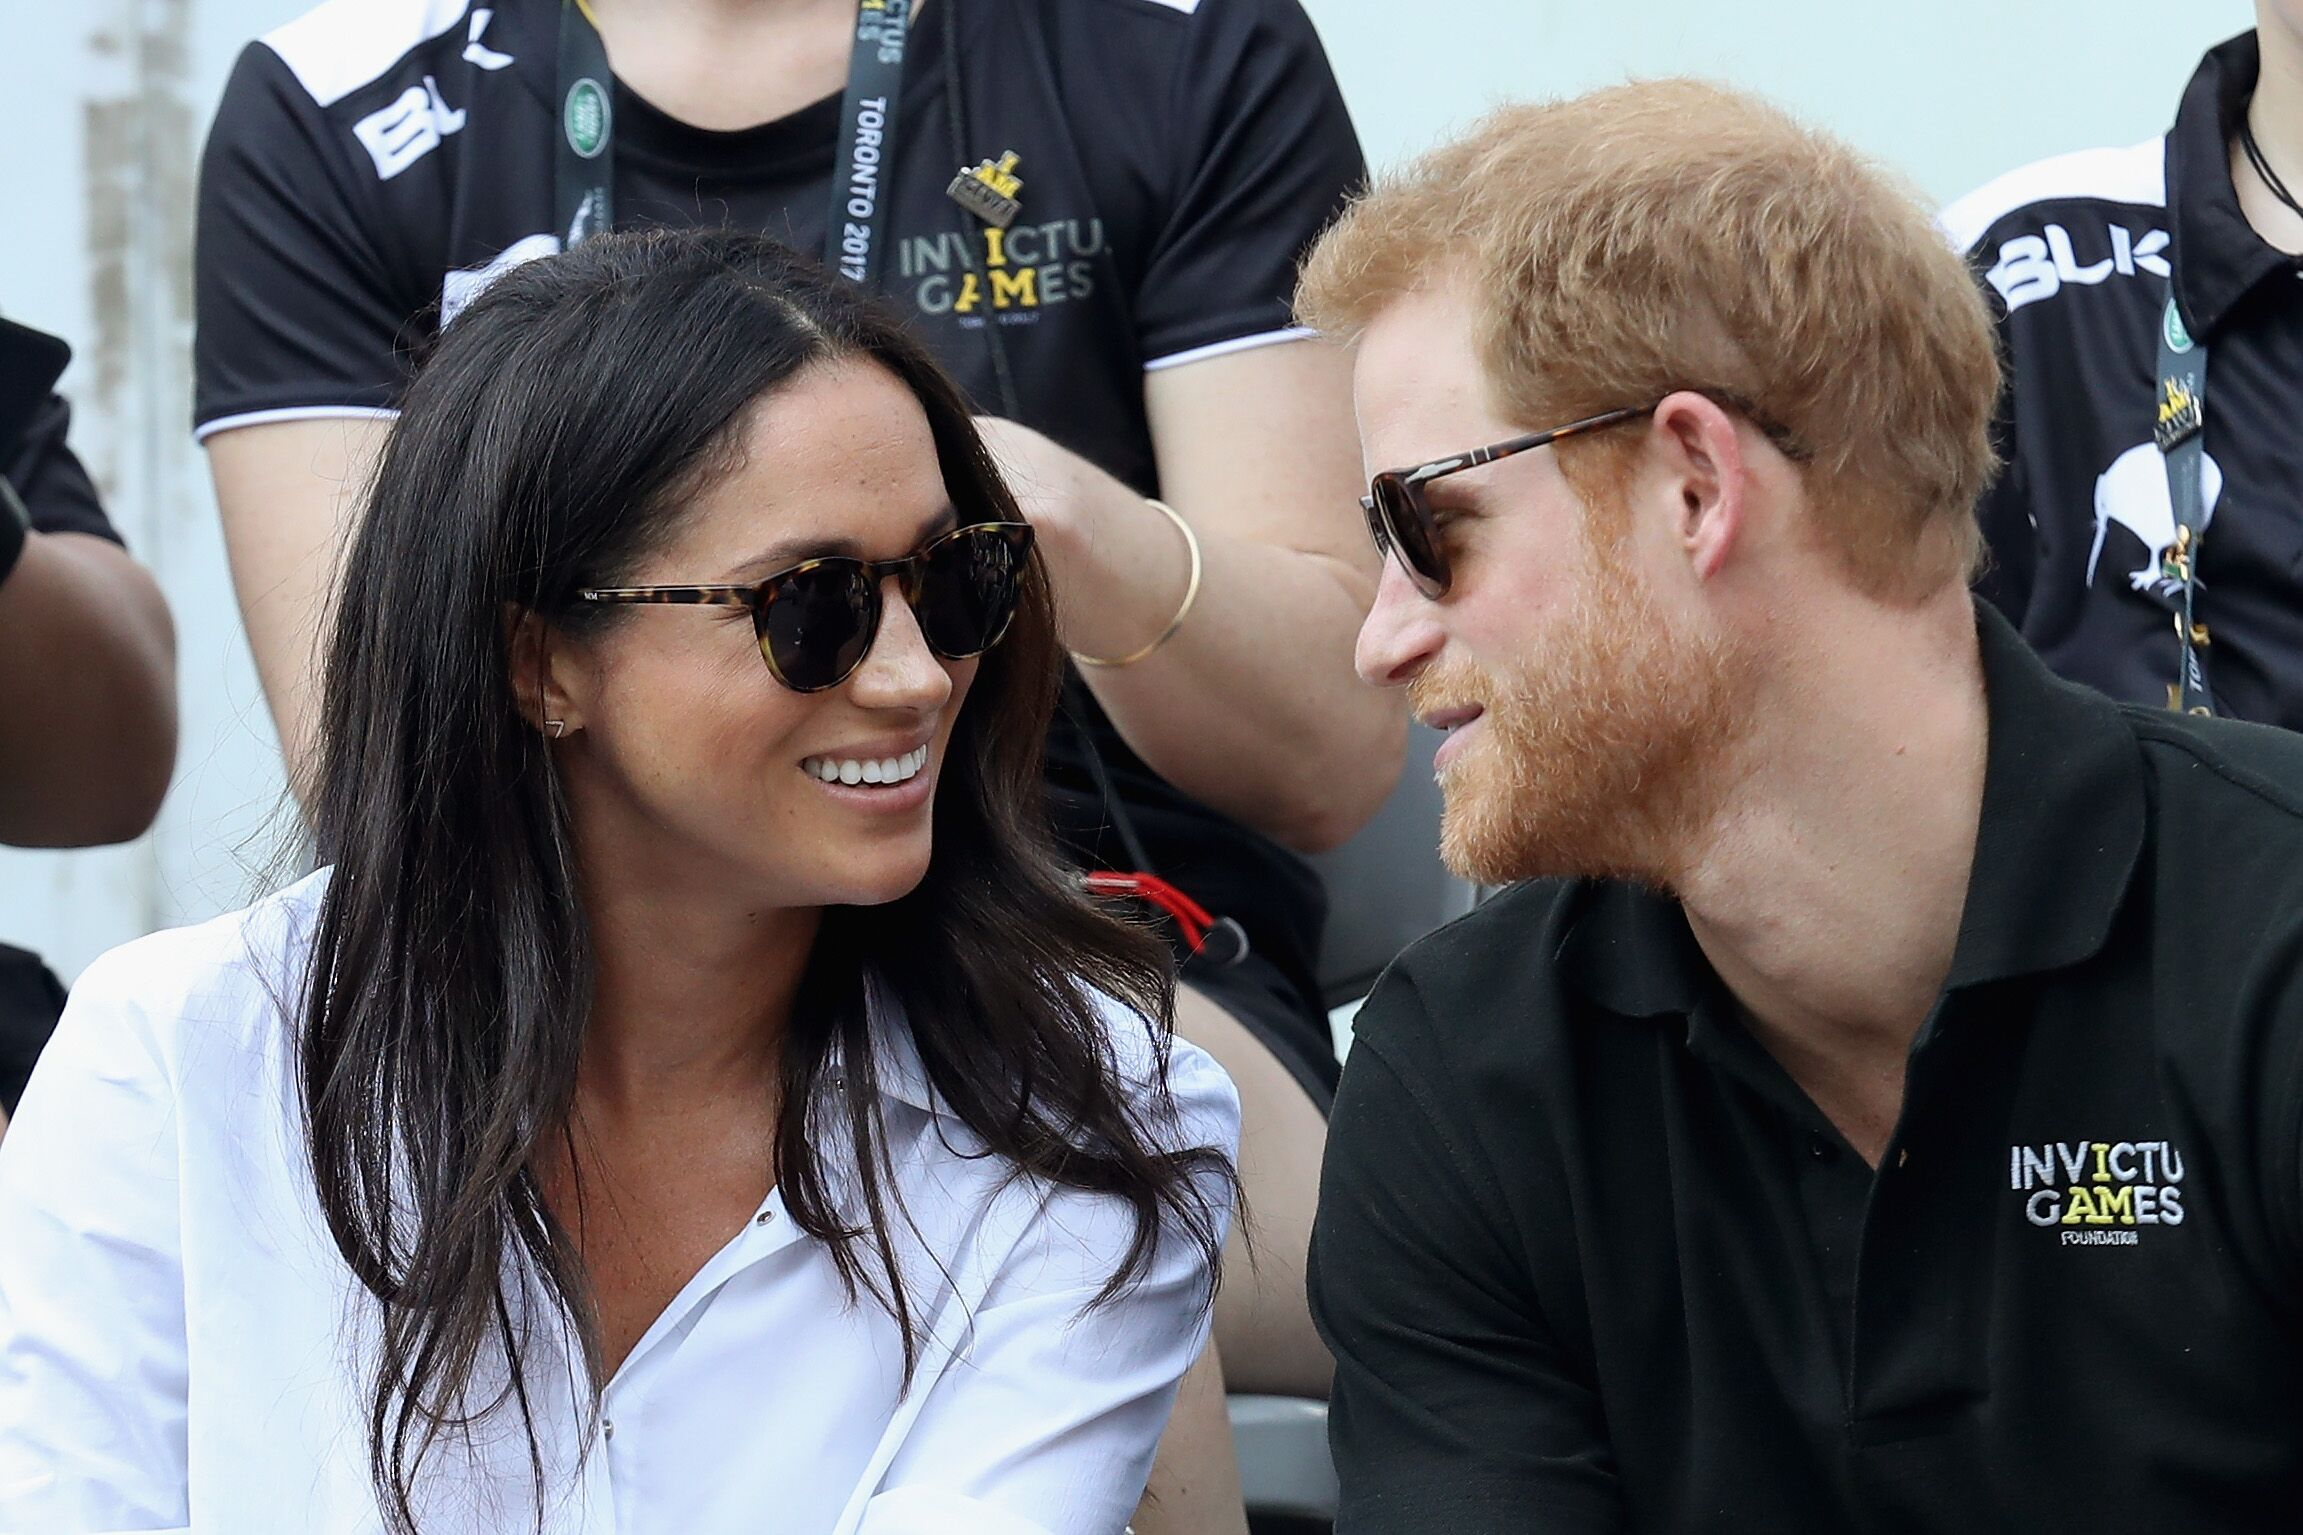 Prince Harry and Duchess Meghan at a Wheelchair Tennis match during the Invictus Games on September 25, 2017, in Toronto, Canada | Photo: Chris Jackson/Getty Images